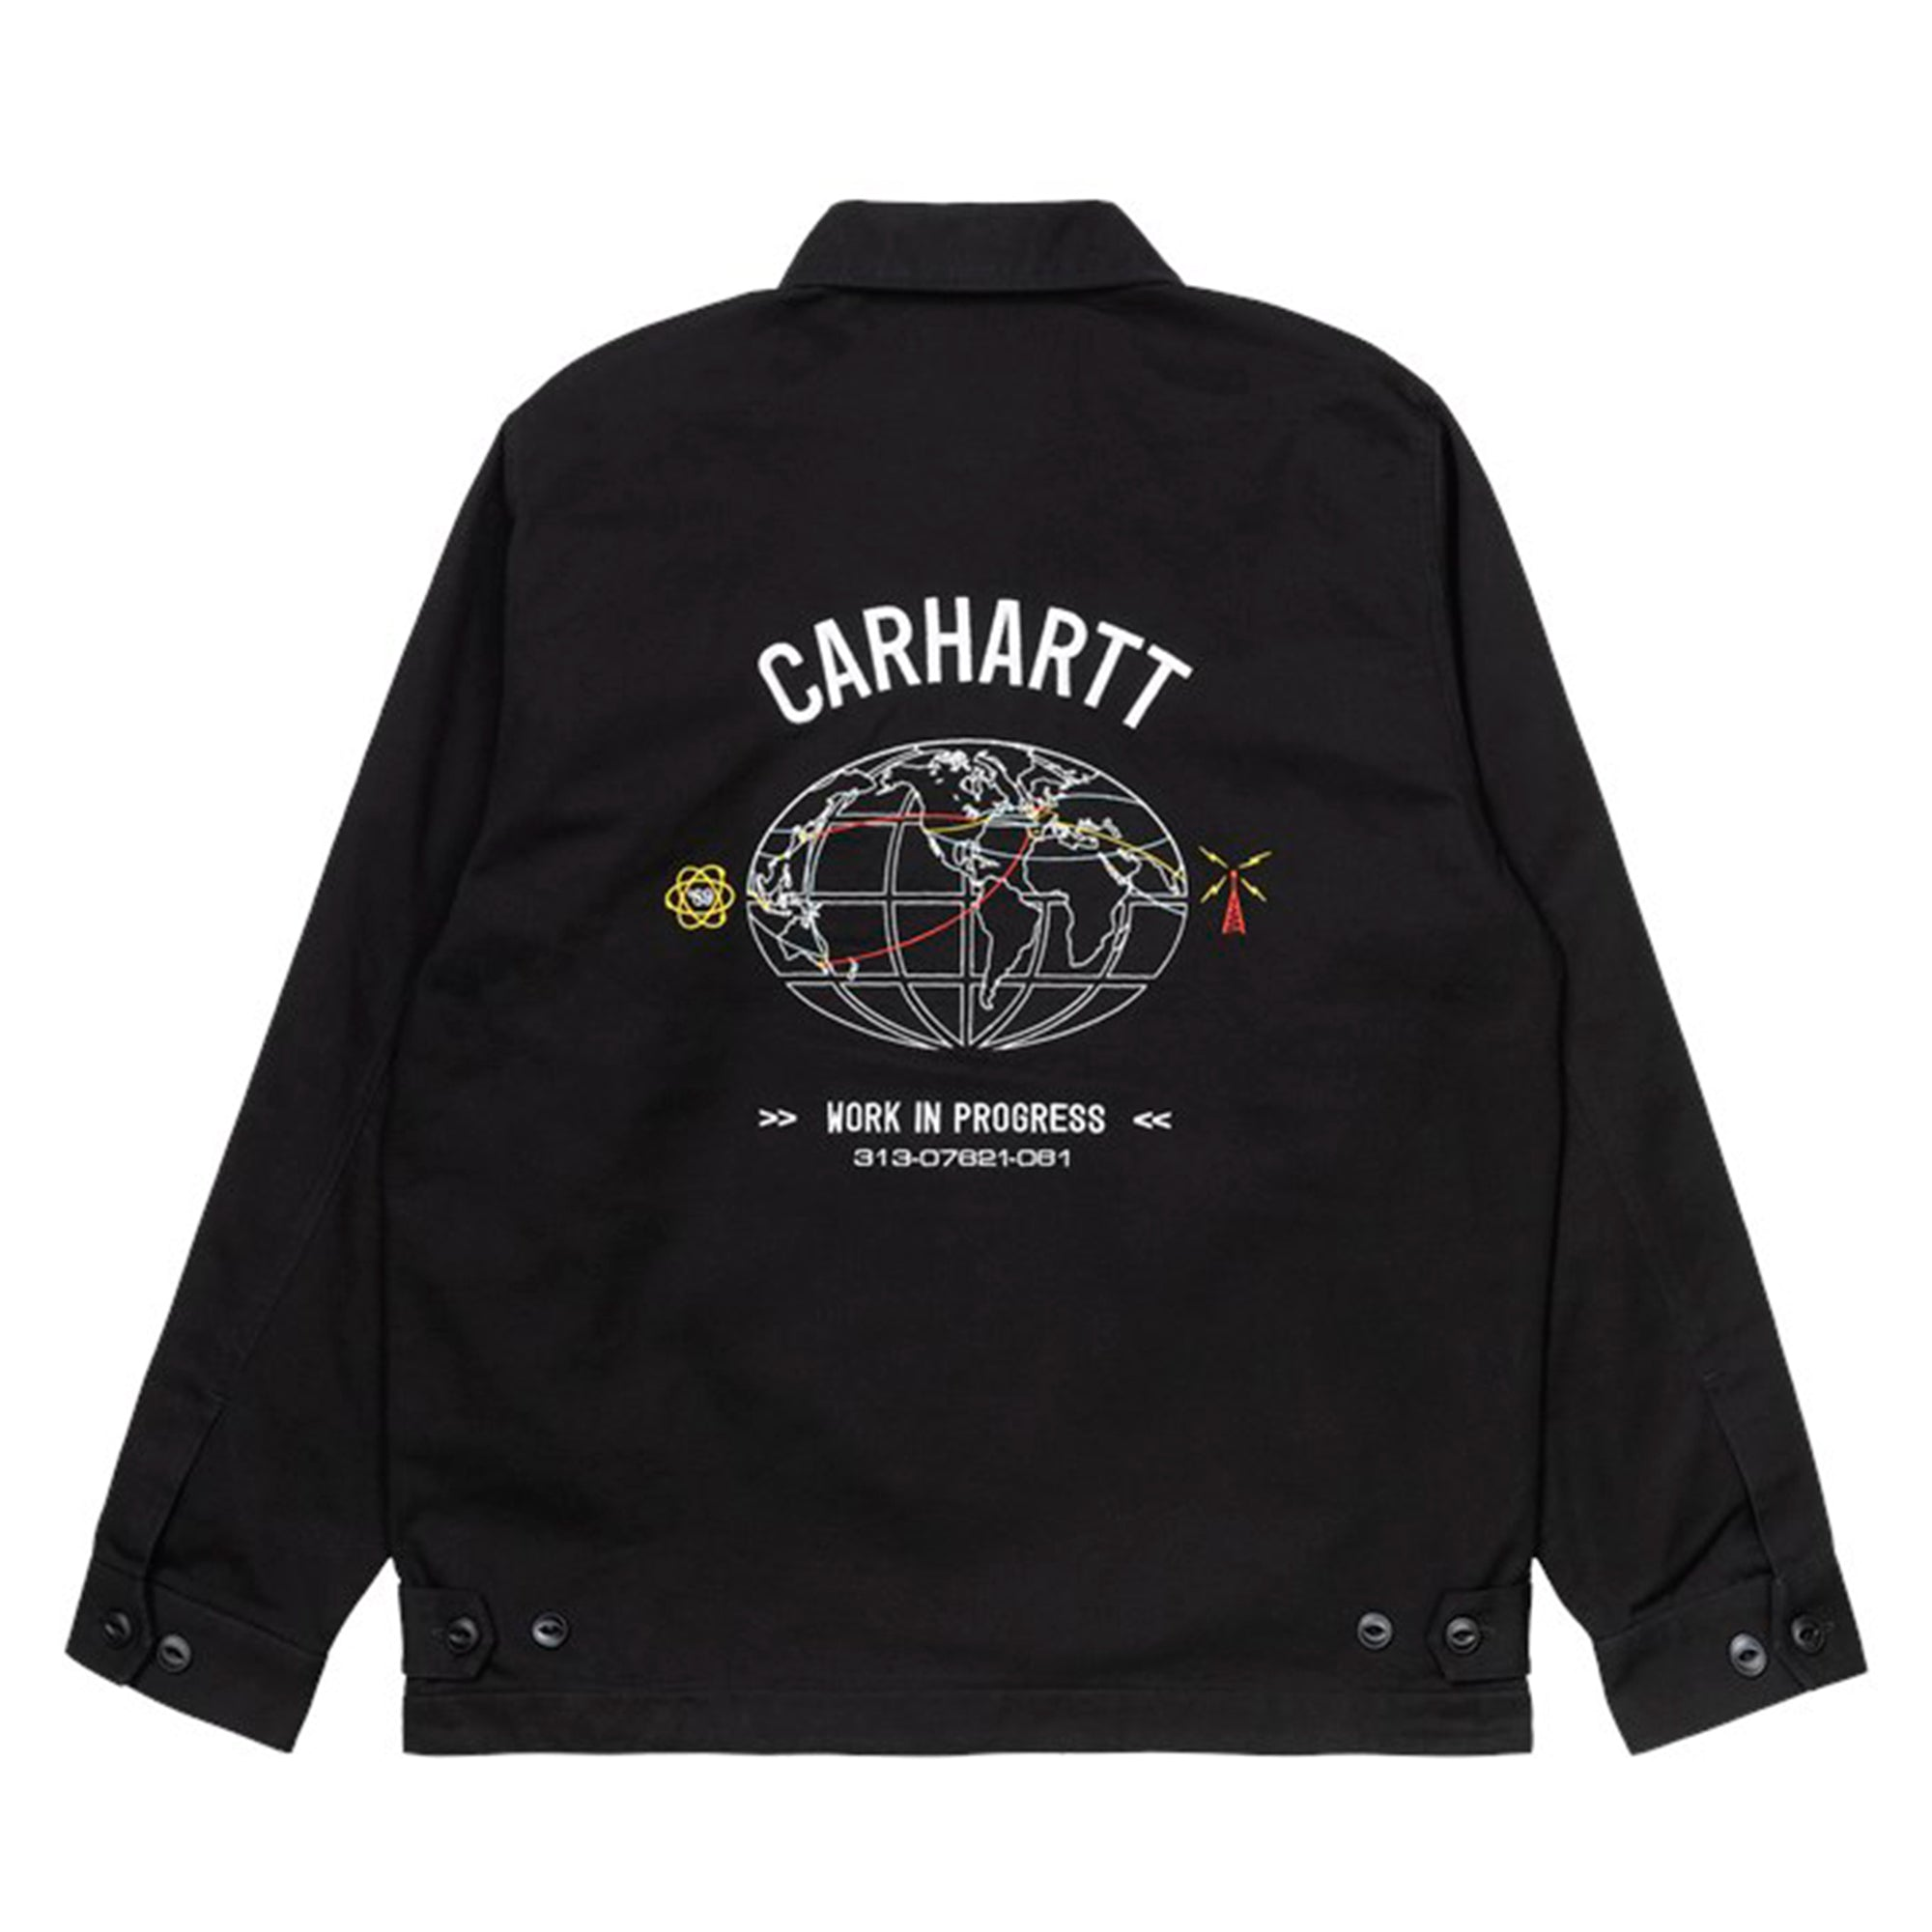 Carhartt WIP Cartograph Jacket: Black - The Union Project